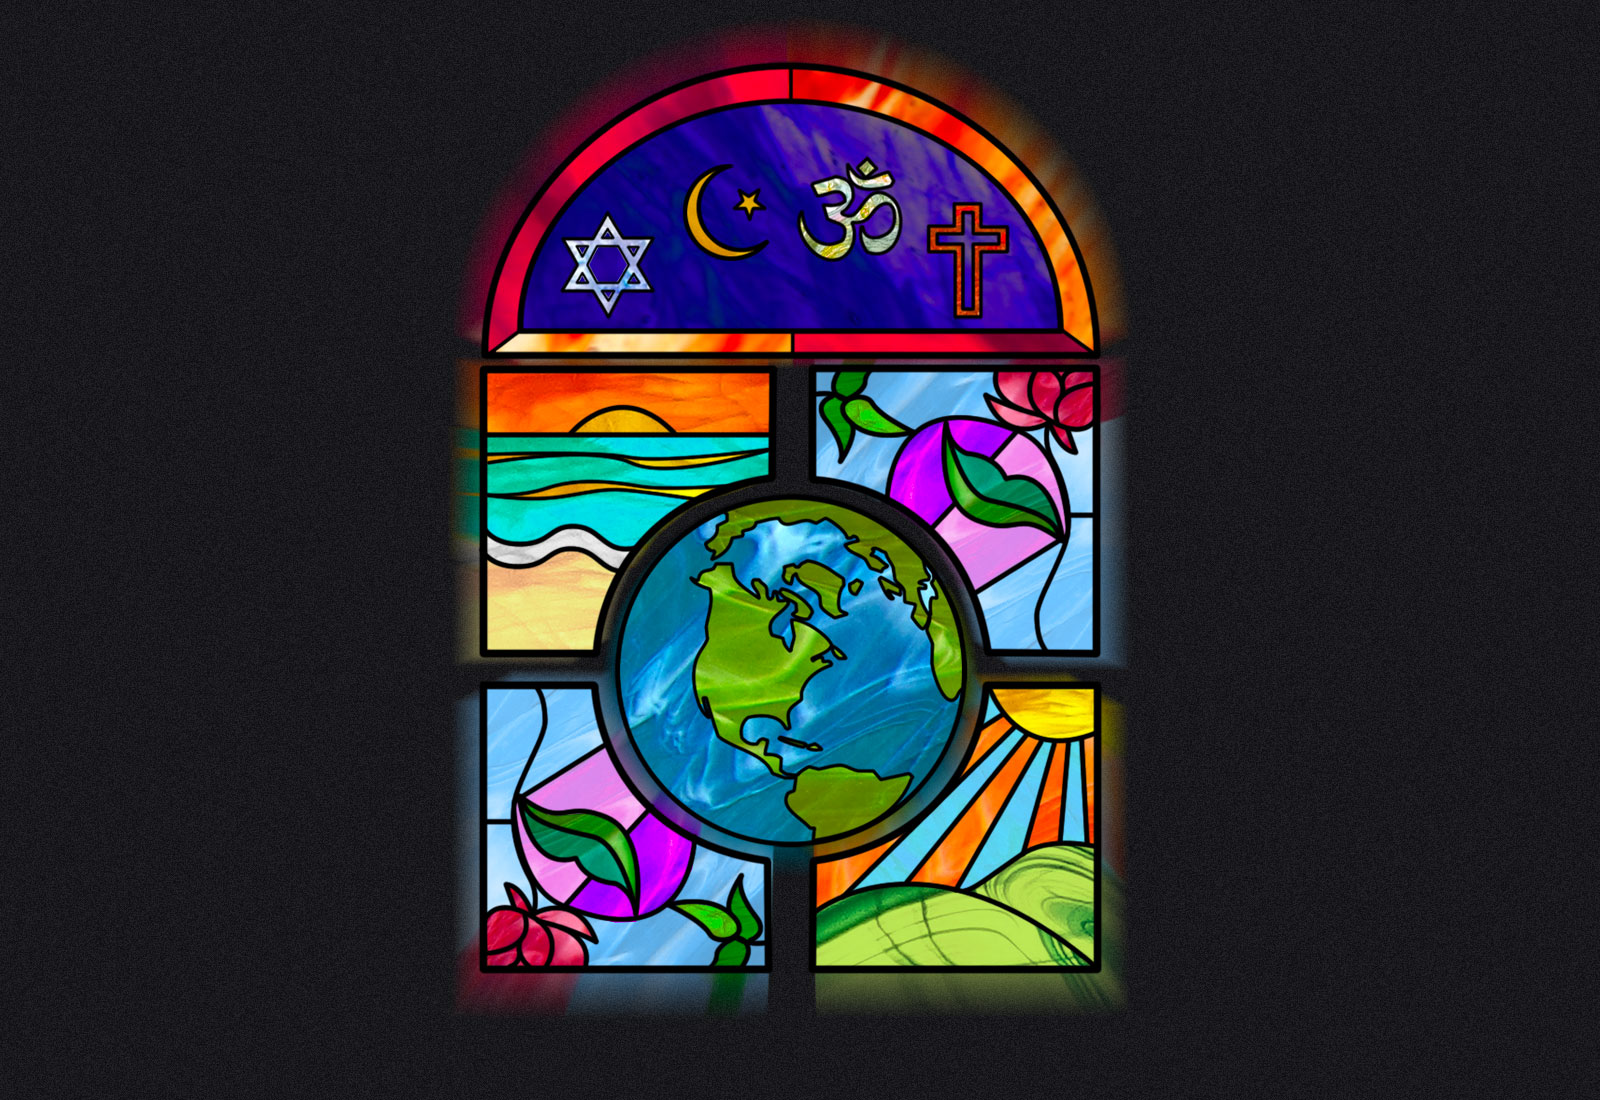 Illustration: a stained glass window with planet earth and various religious symbols